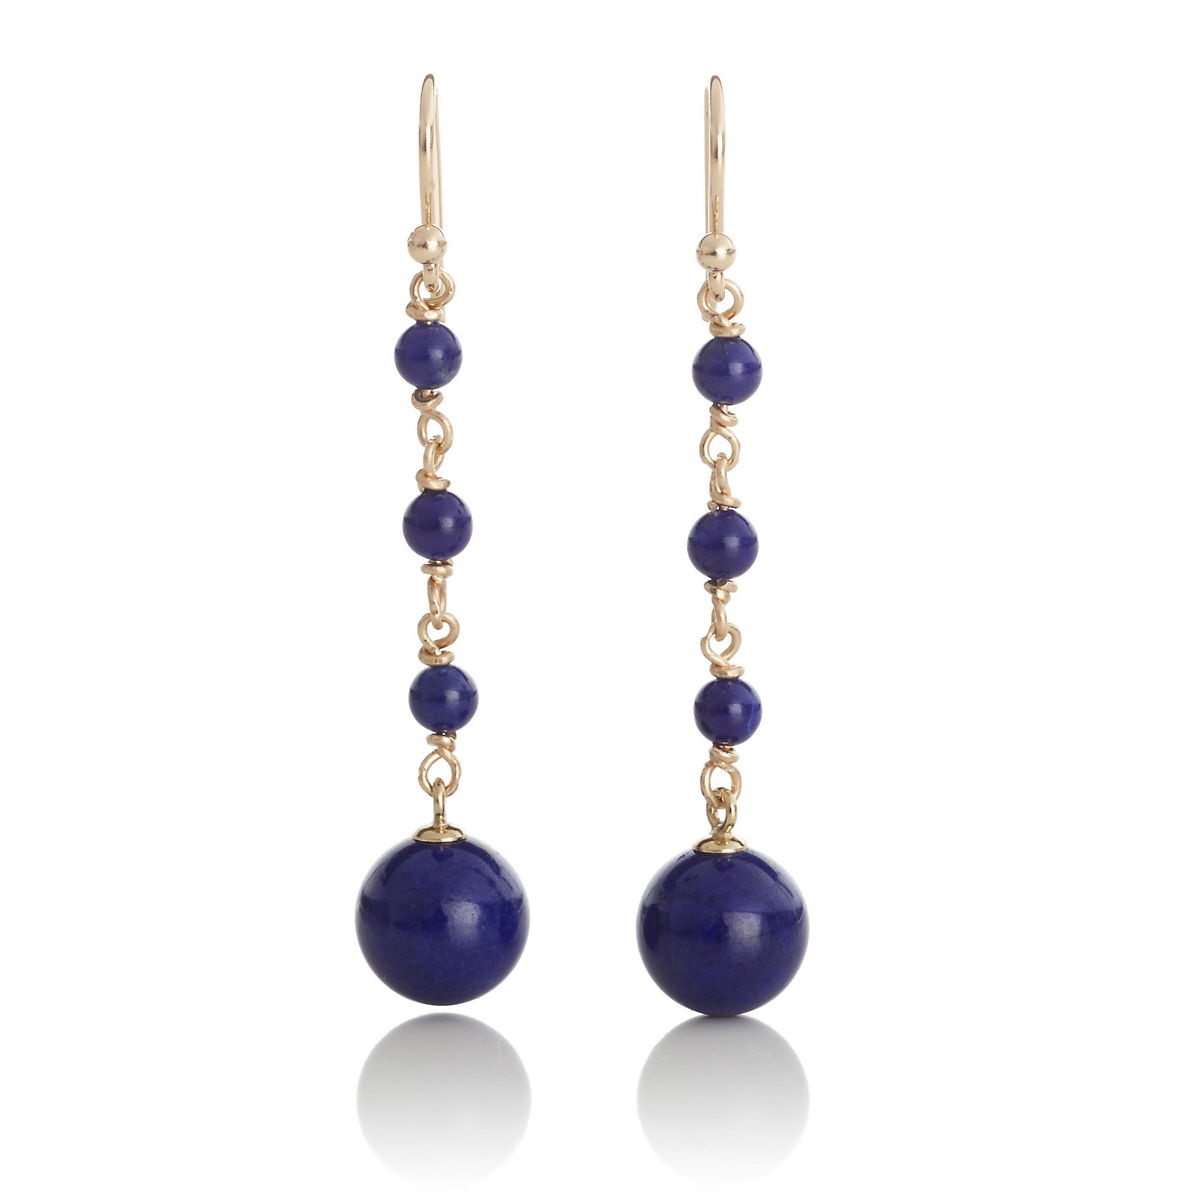 Gump's Lapis Bead Long Drop Earrings